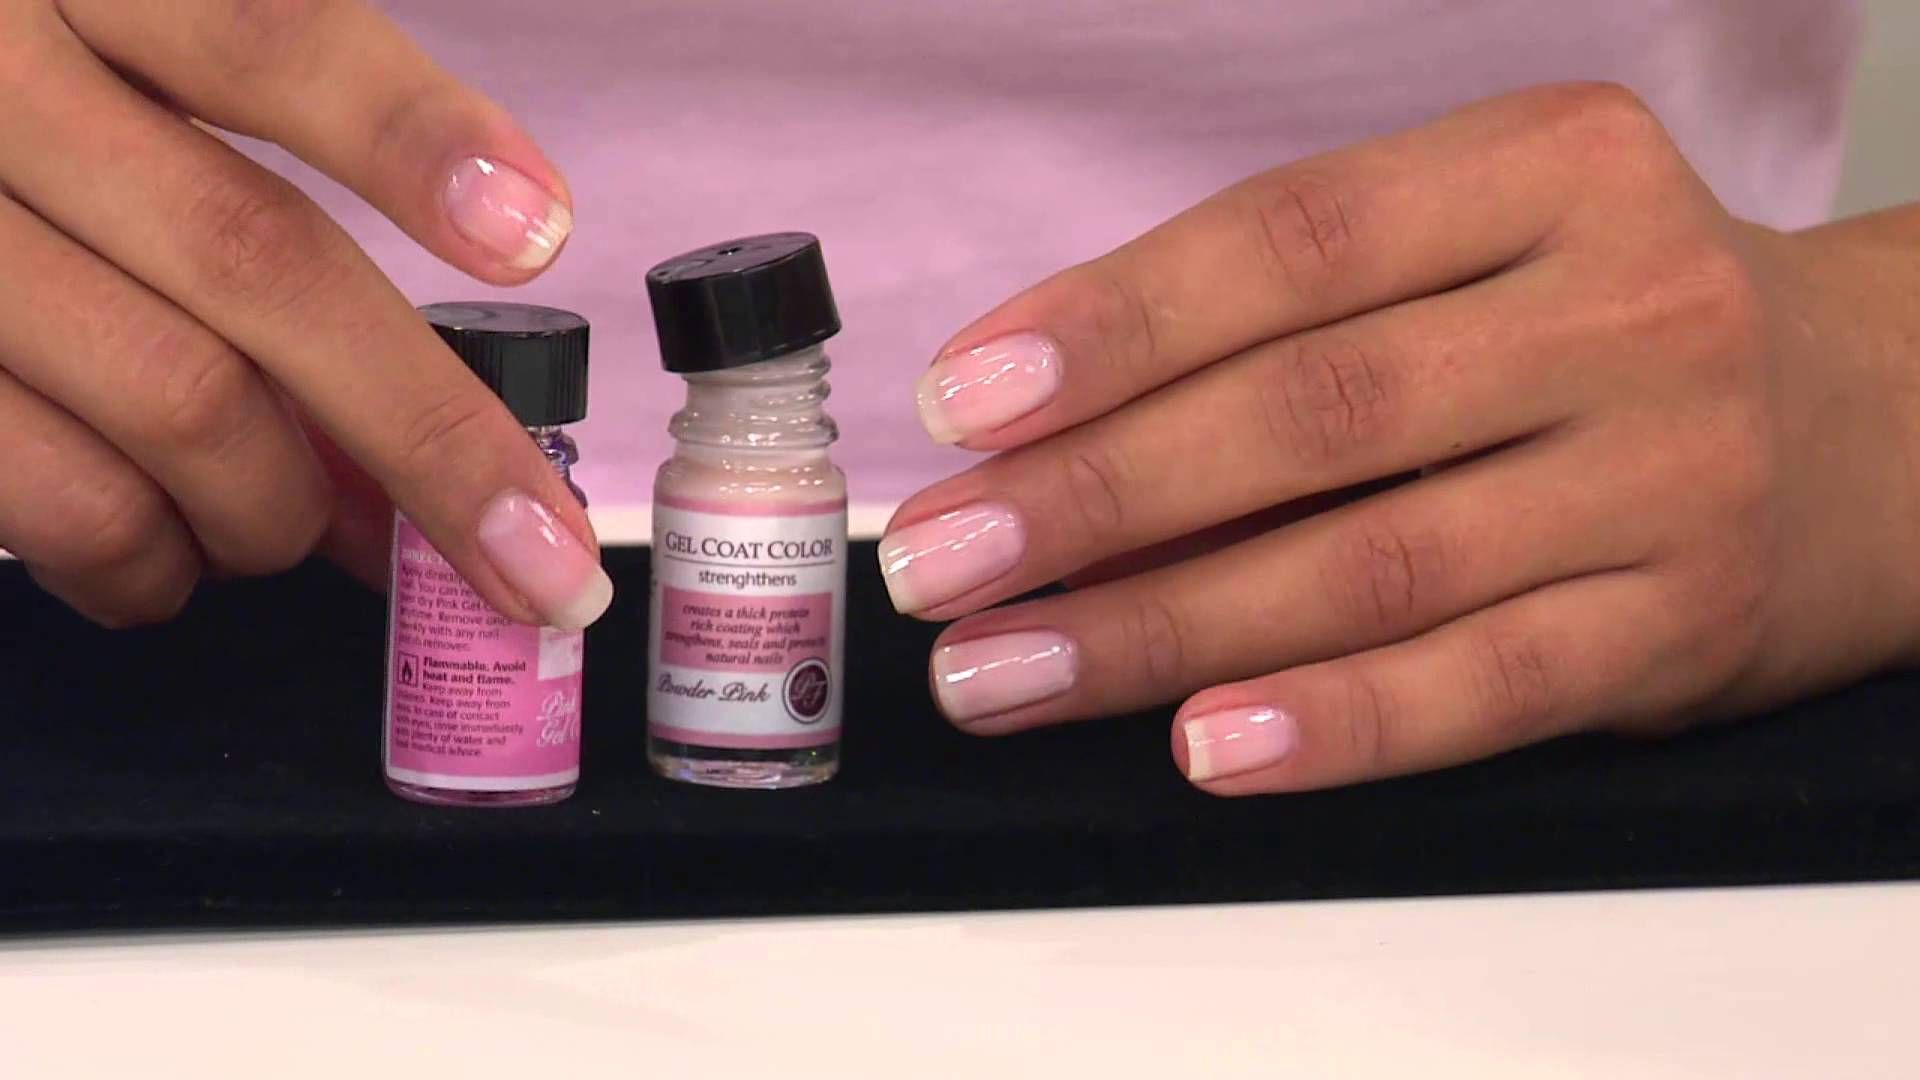 Cool Transparent Nail Polish Colors Big Nail Art Designs In Red Solid Black Nail Polish Meaning Nail Arts Latest Youthful Nails Are Yellow From Nail Polish OrangeNail Art Tree 1000  Images About House Of Beauty Tips On Pinterest | Natural ..